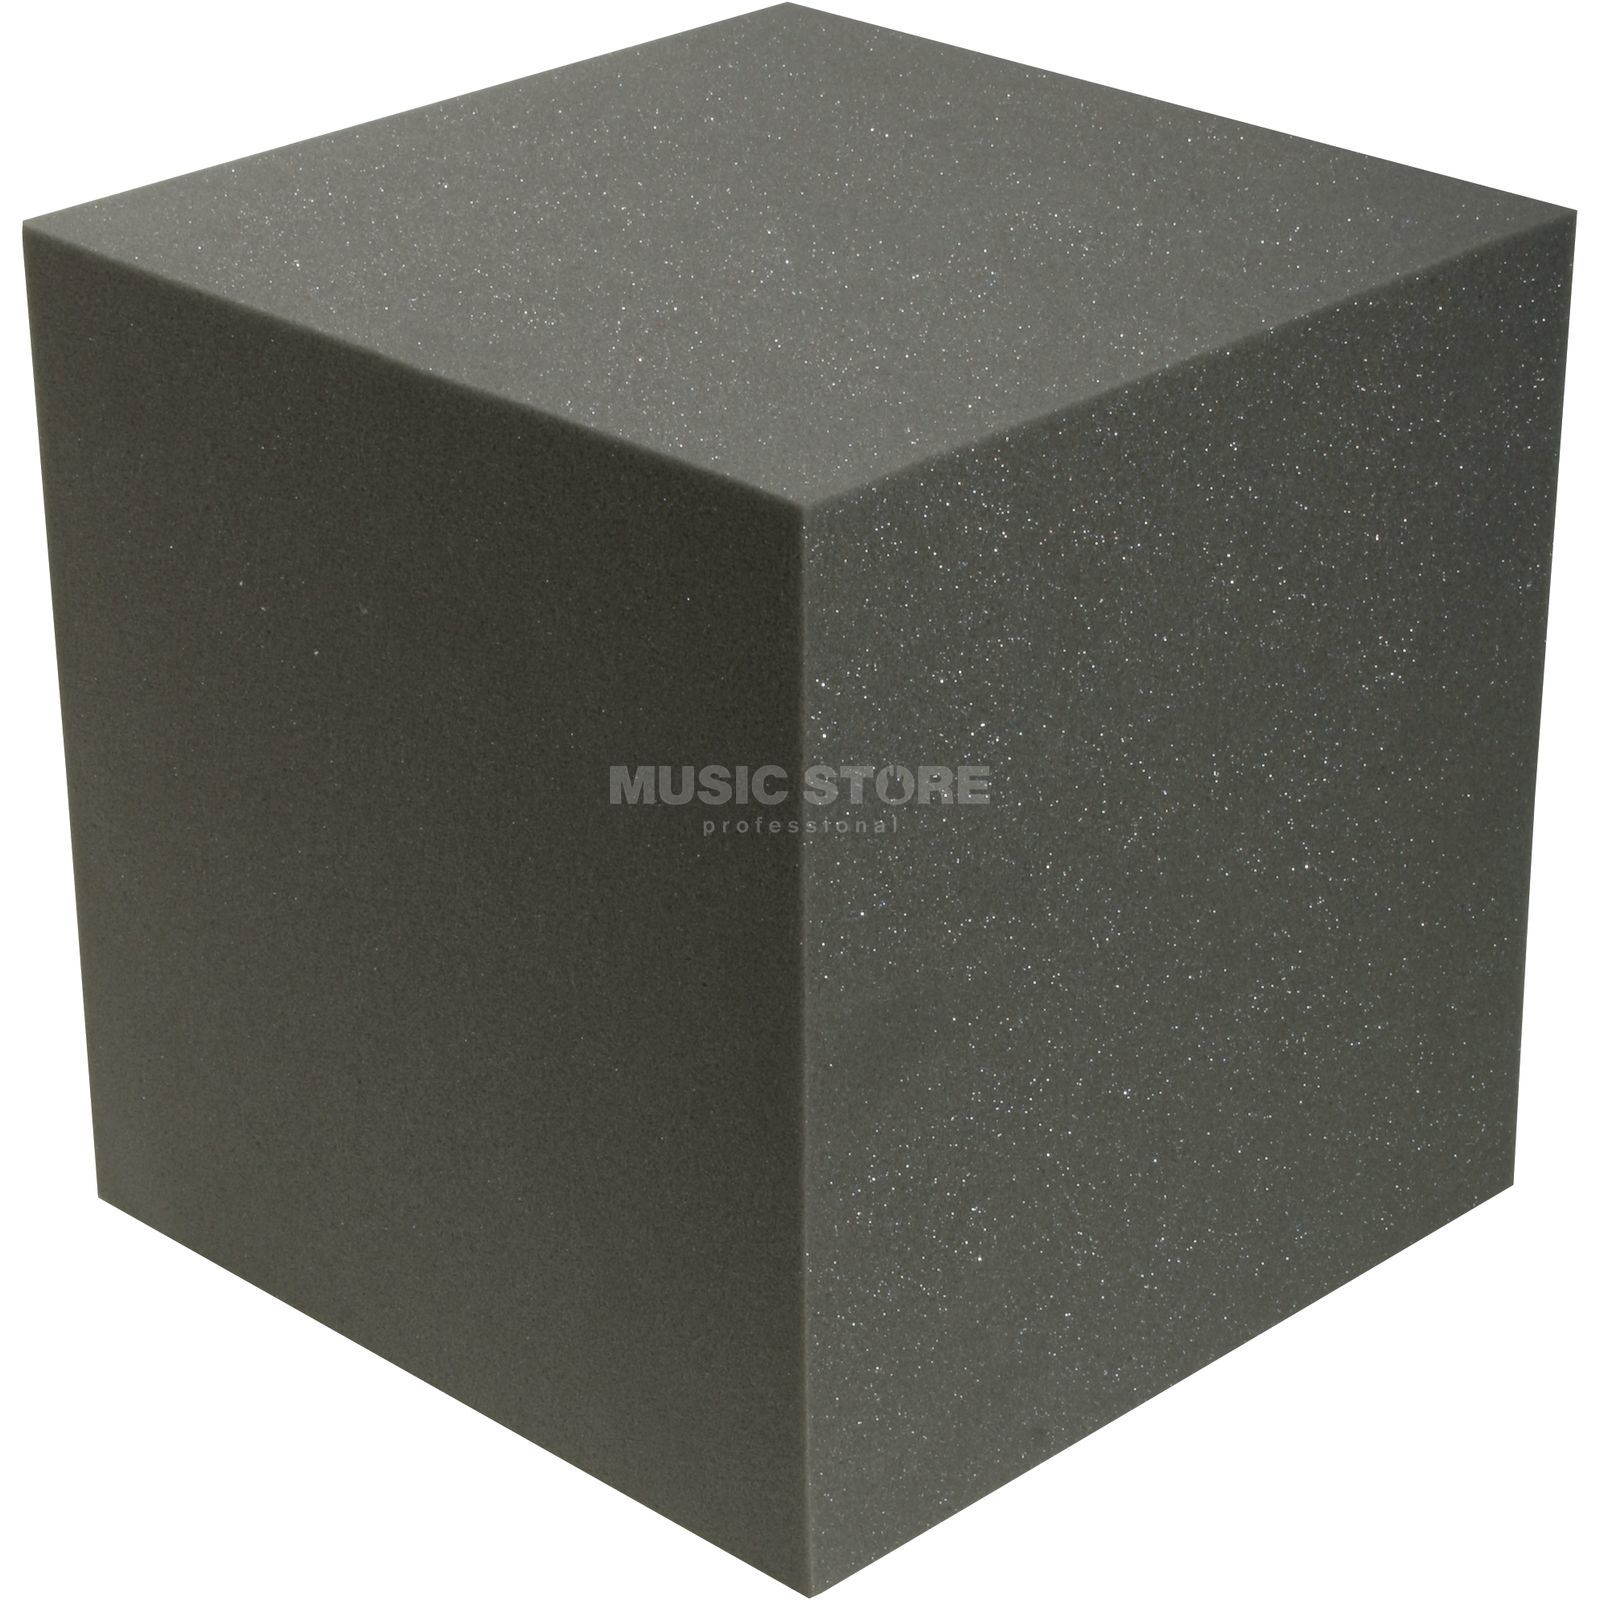 MUSIC STORE Absorber-Set Qube, anthracite 300x300x300 Product Image